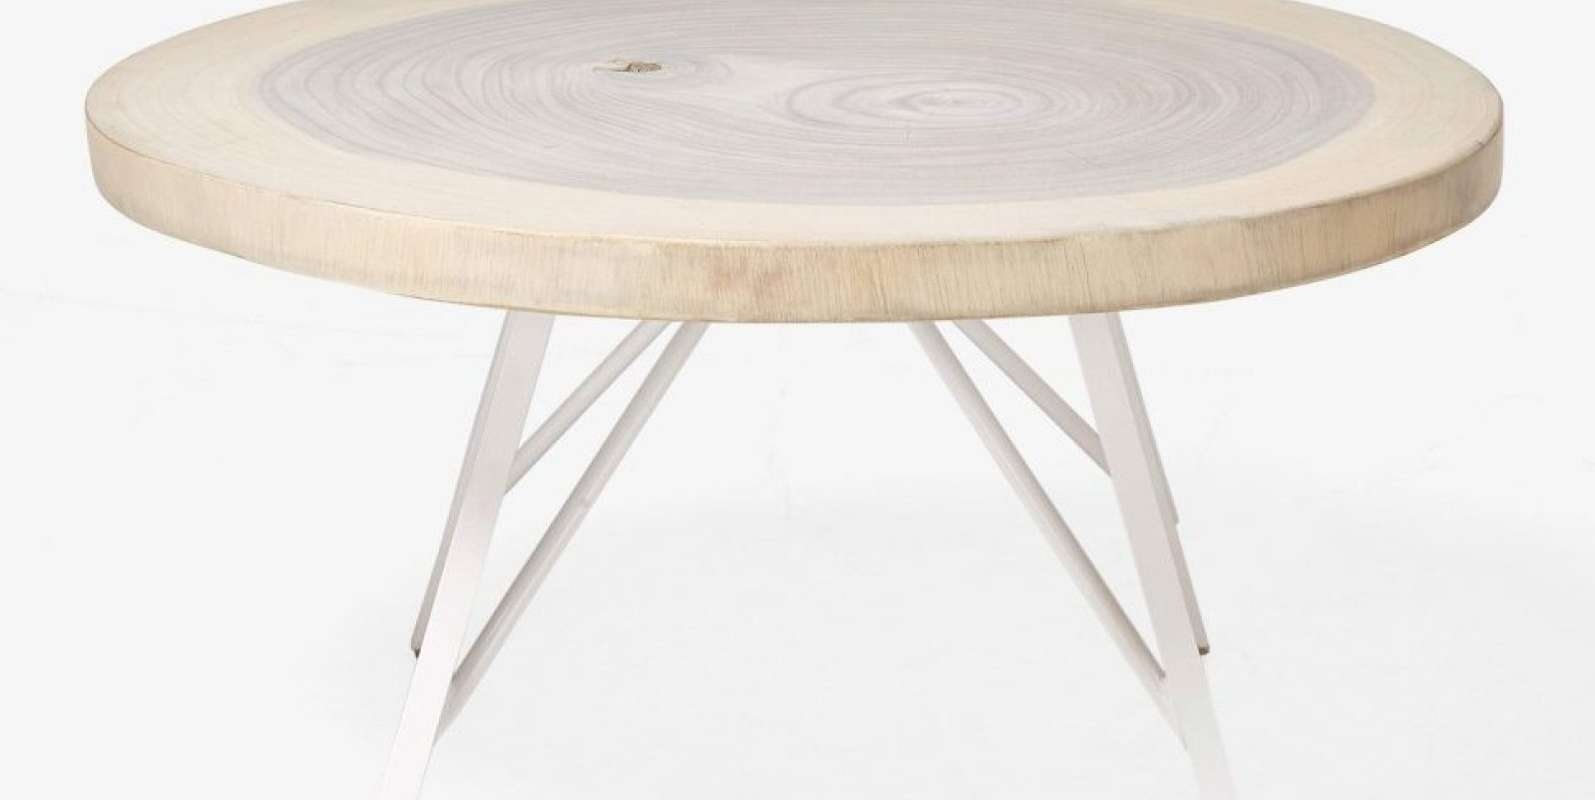 Elegant Beech Coffee Tables Uk – Mediasupload Within 2017 Round Beech Coffee Tables (View 12 of 20)